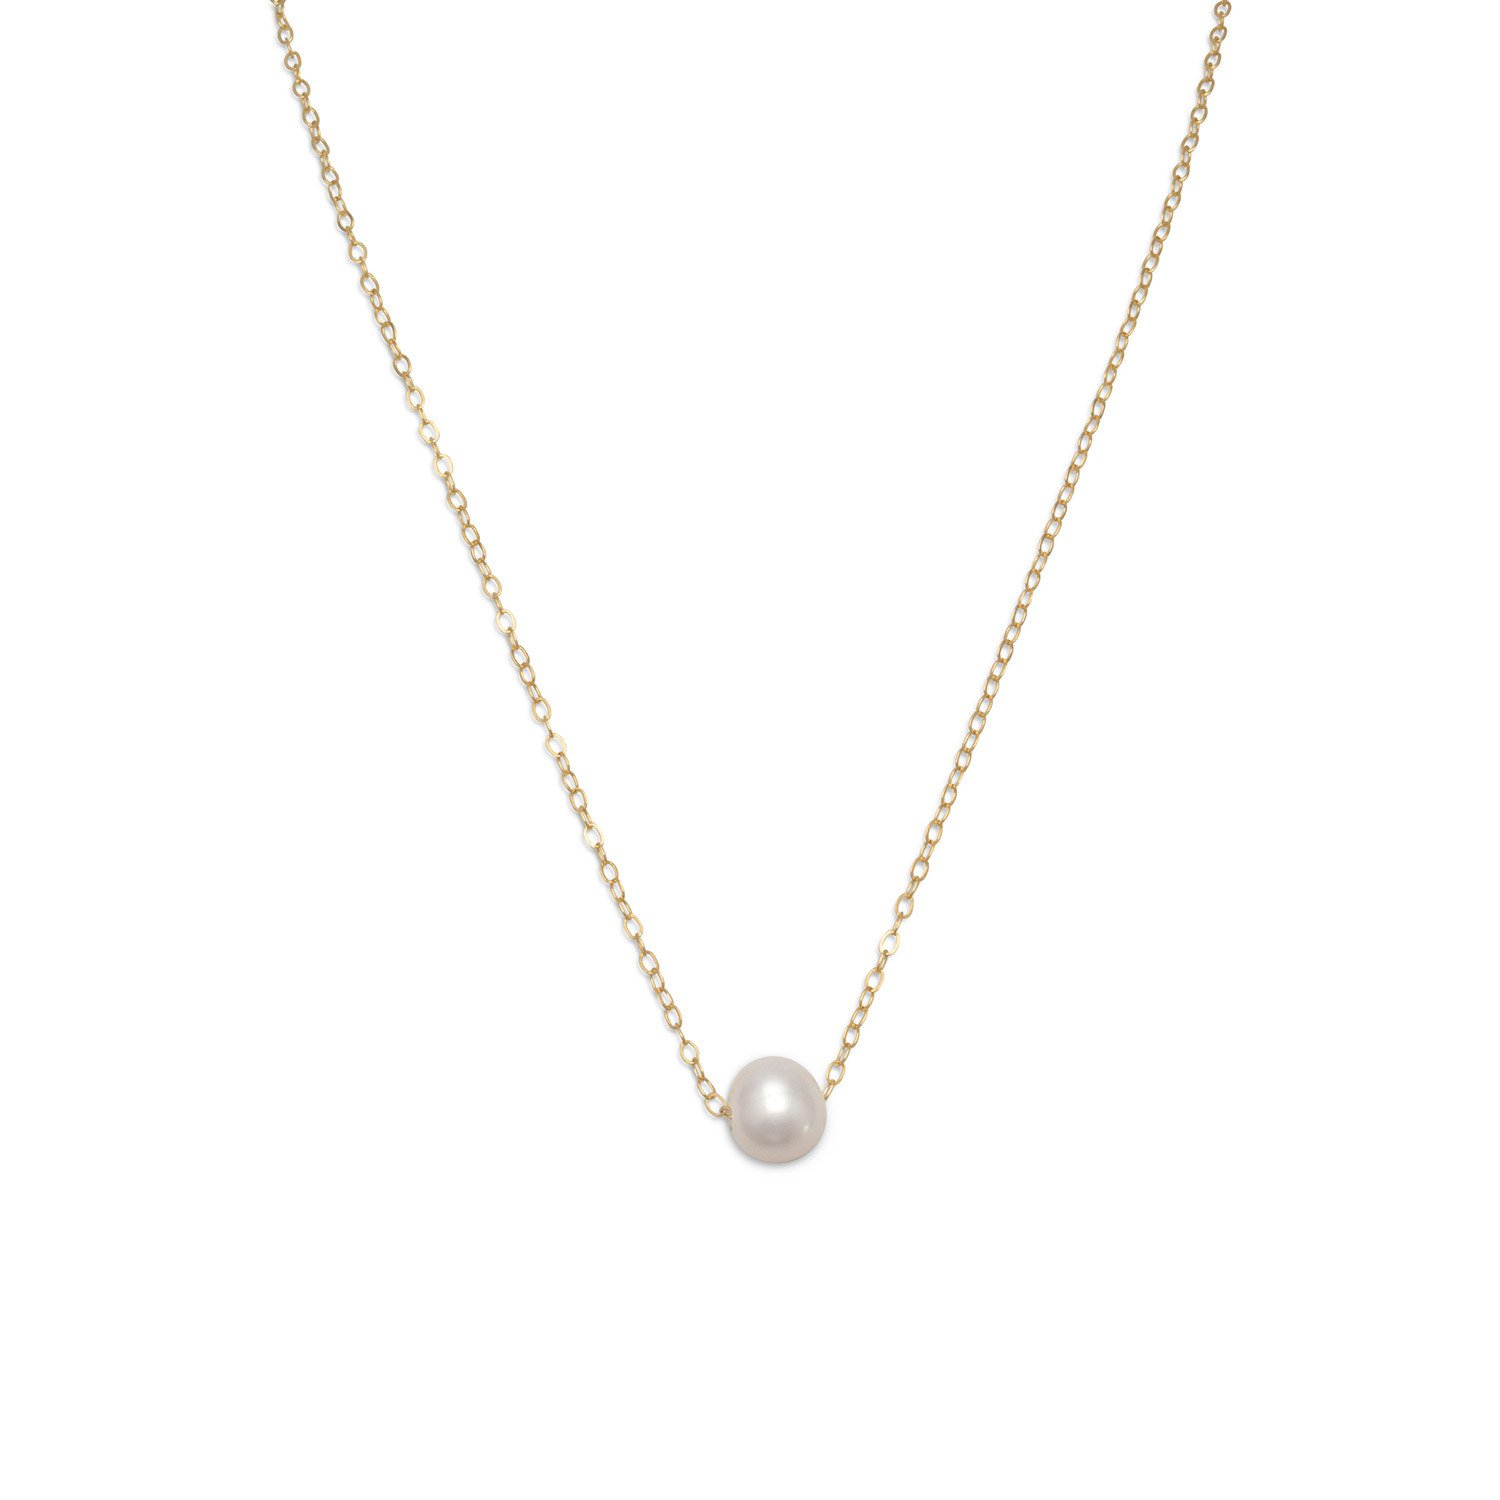 16″ + 2″ Gold Filled Floating Cultured Freshwater Pearl Necklace